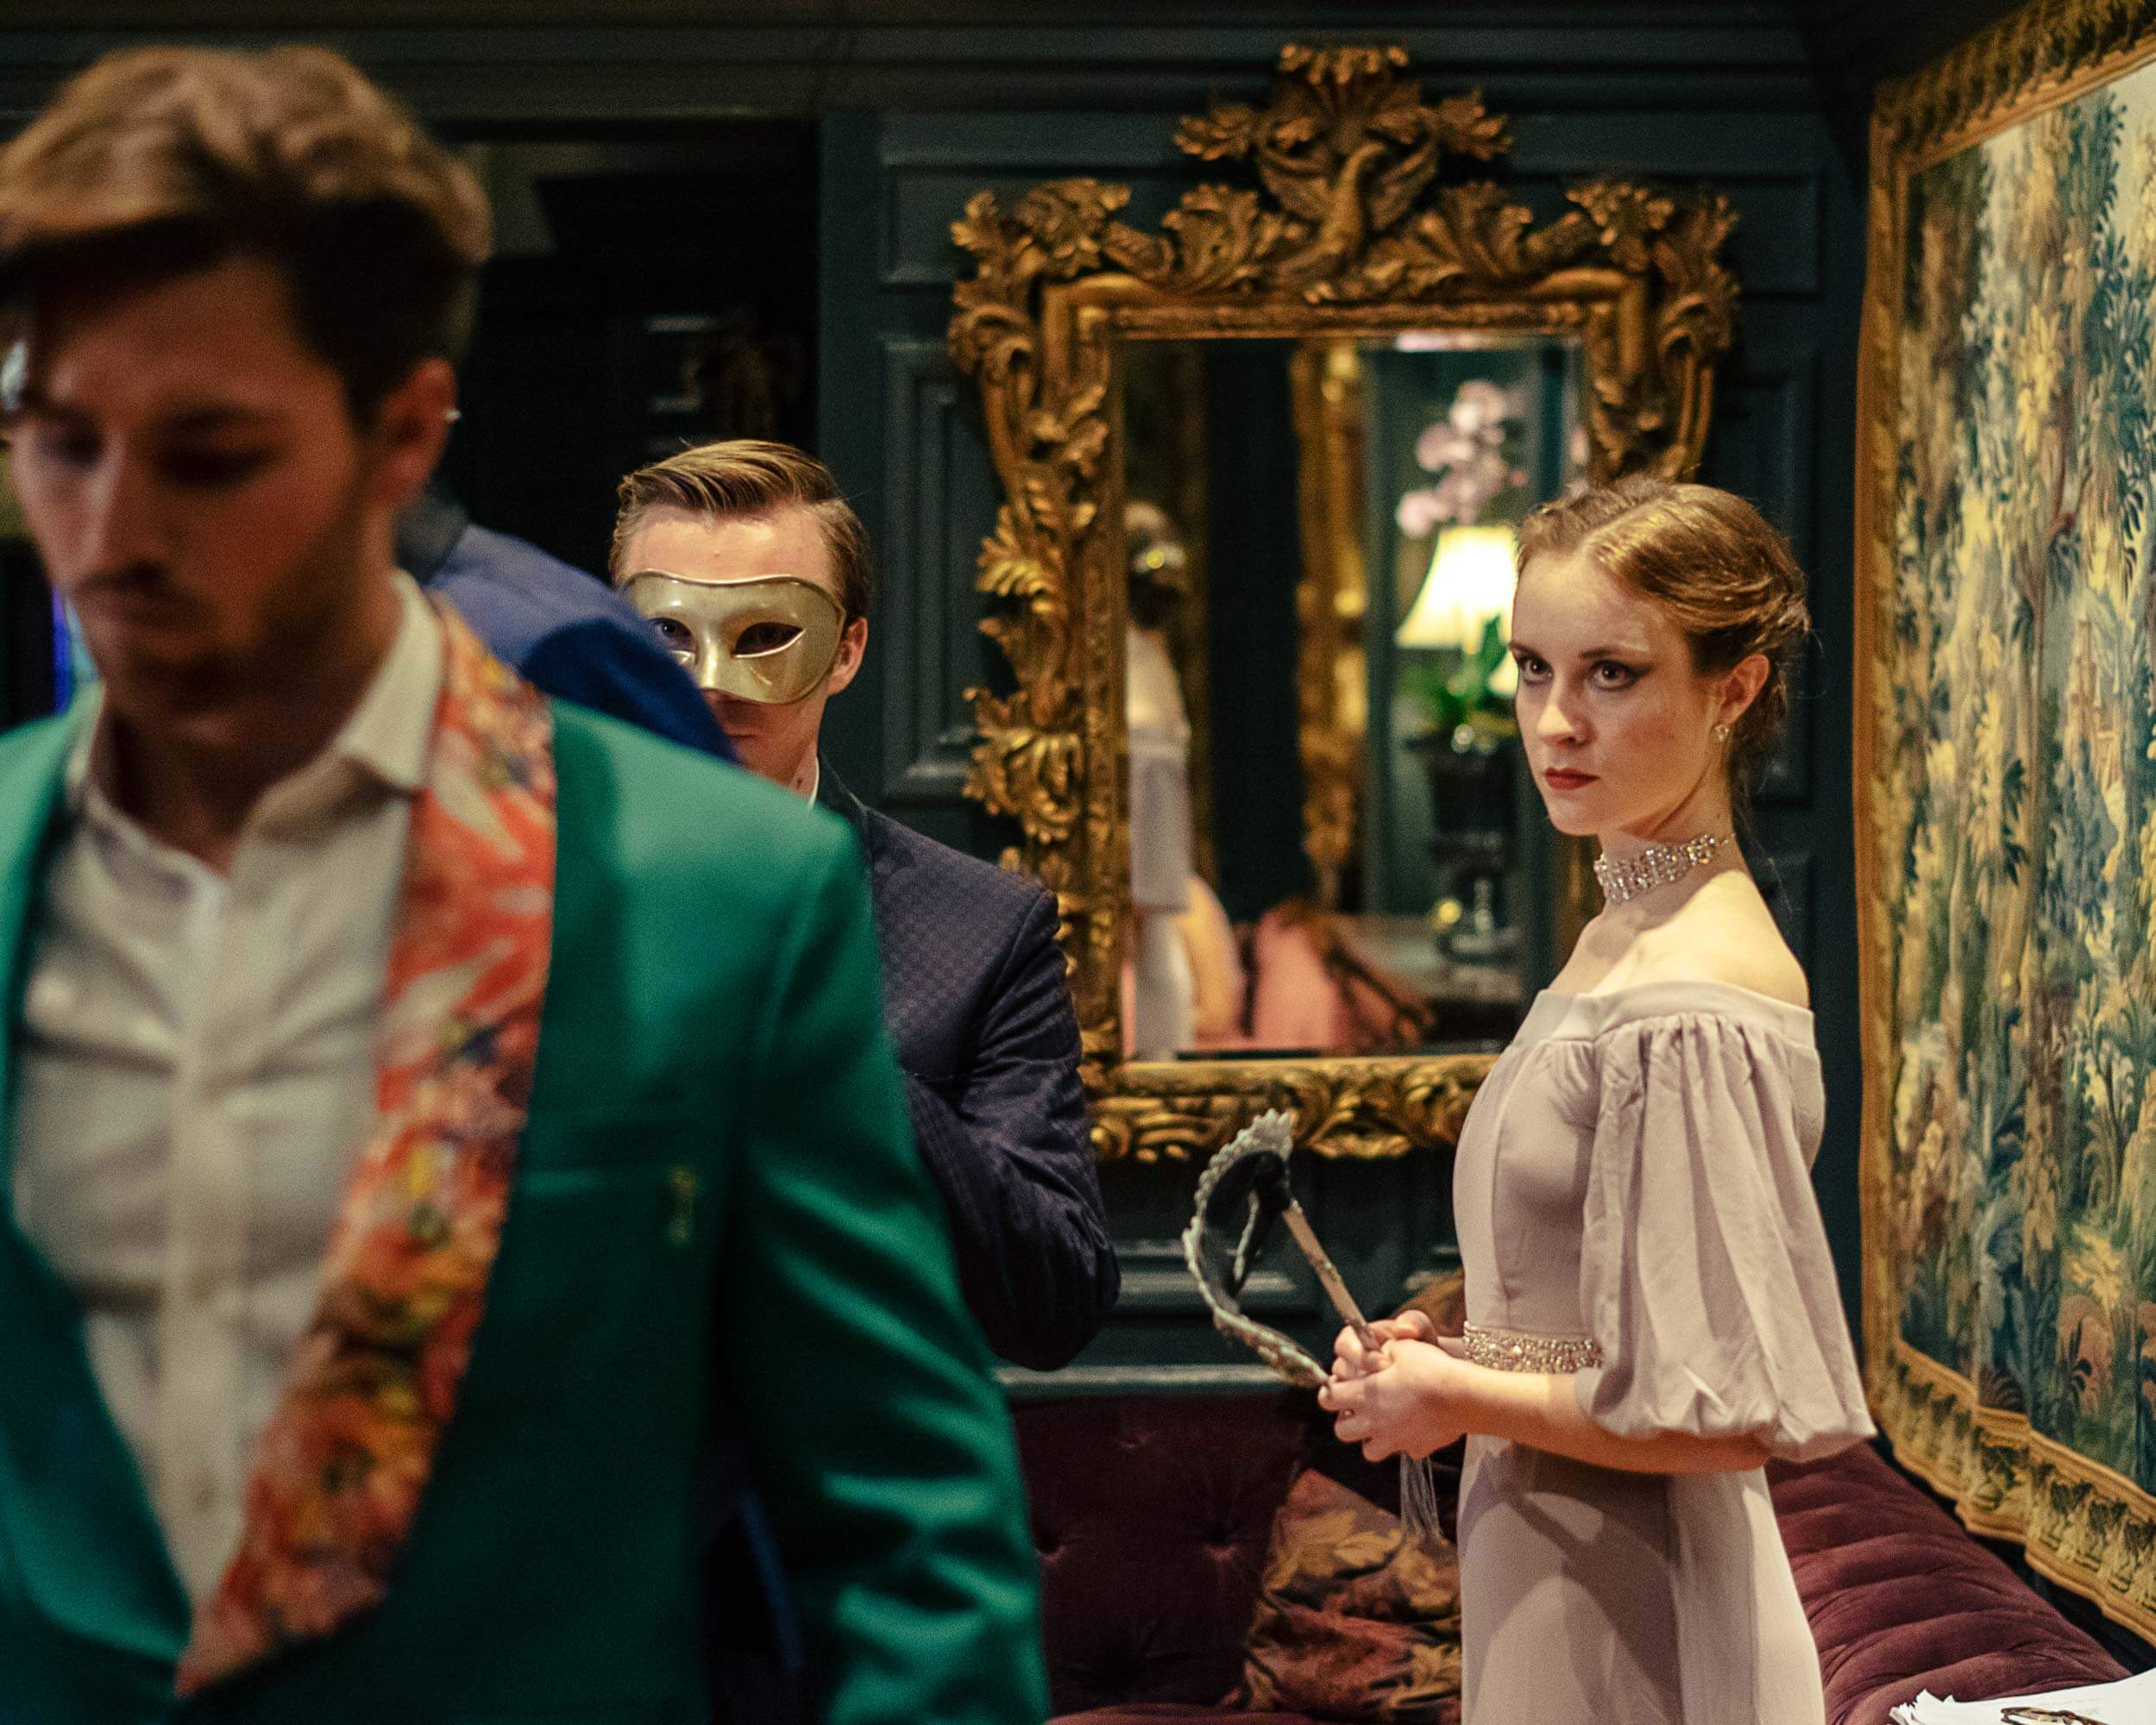 Professional makeup for a period drama. A man in a green jacket walks away from a woman.